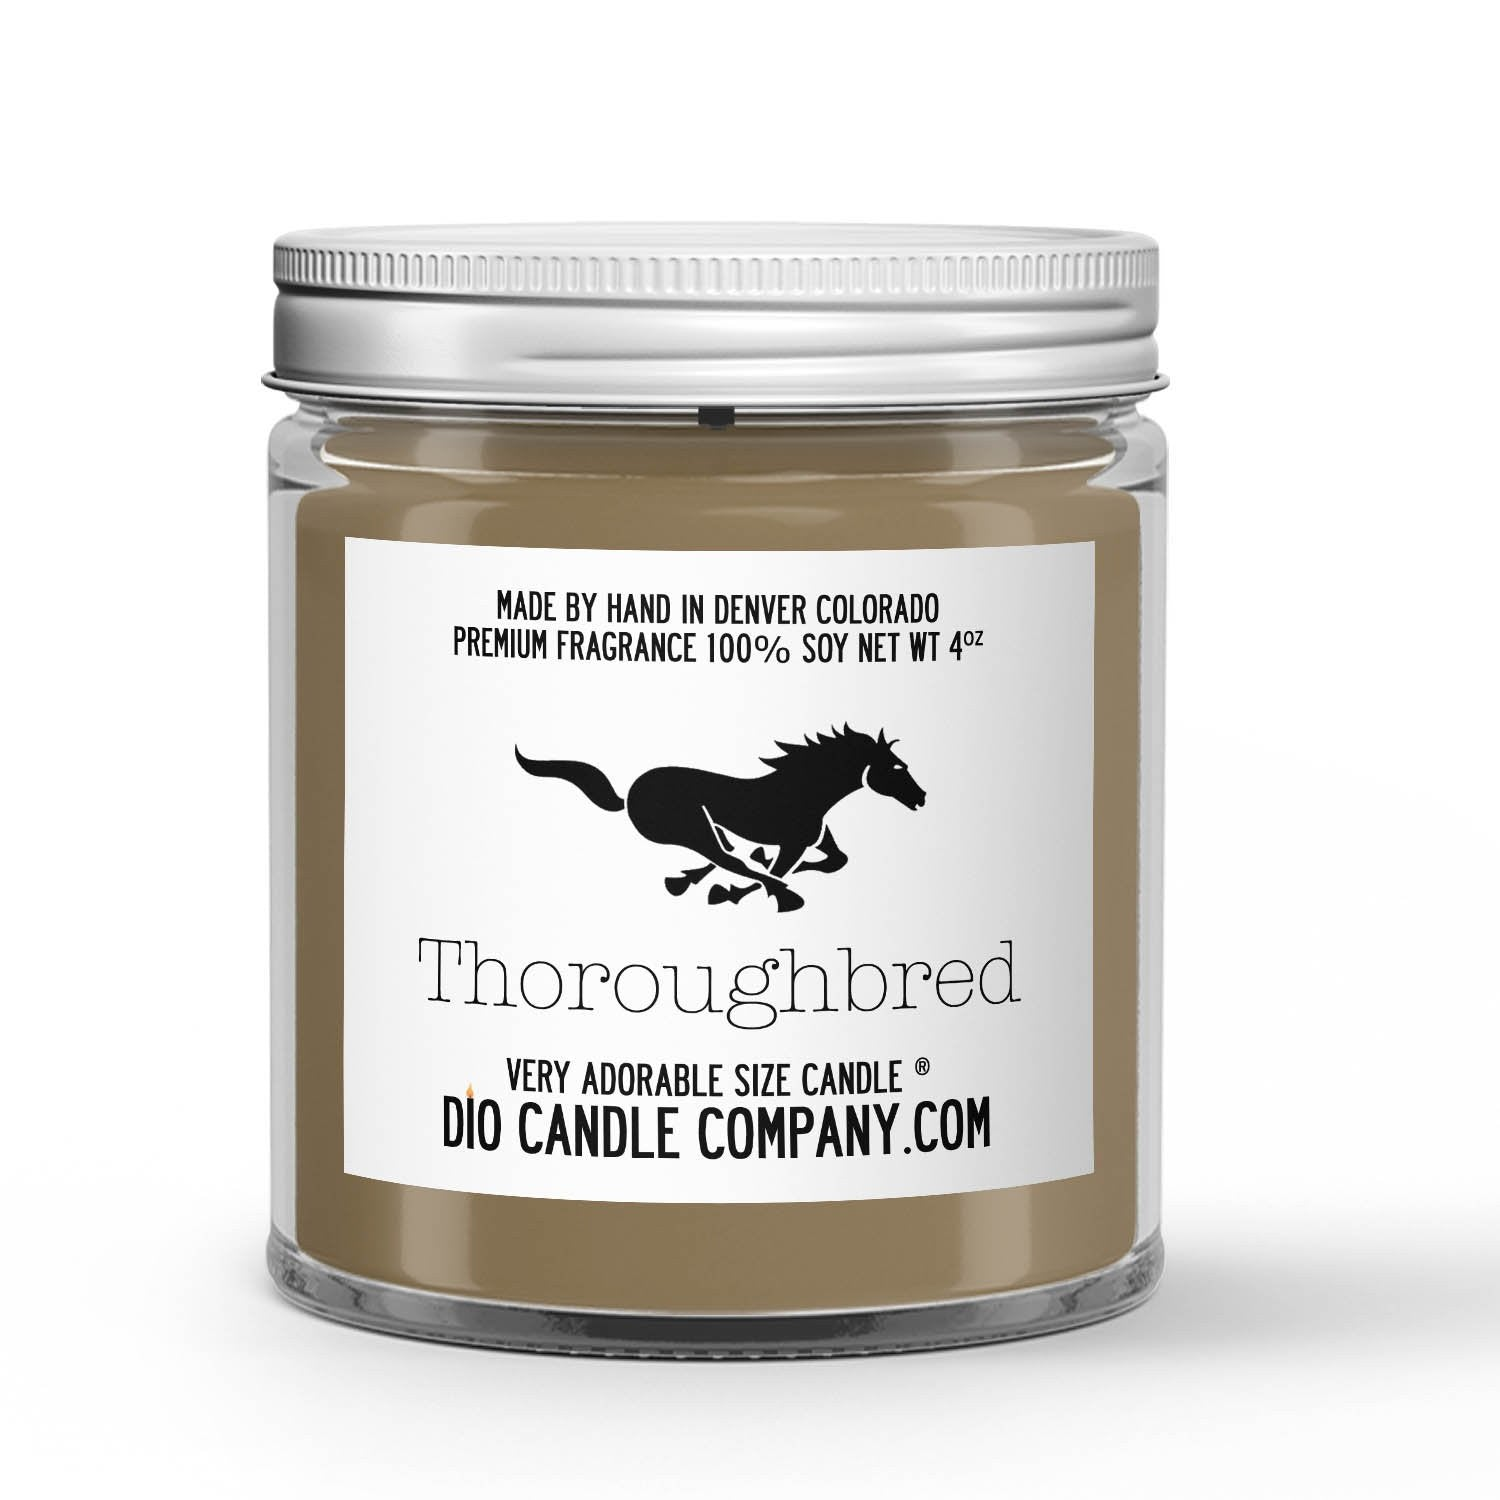 Thoroughbred Candle Saddle - Dirt - Hay - Carrots Scented - Dio Candle Company